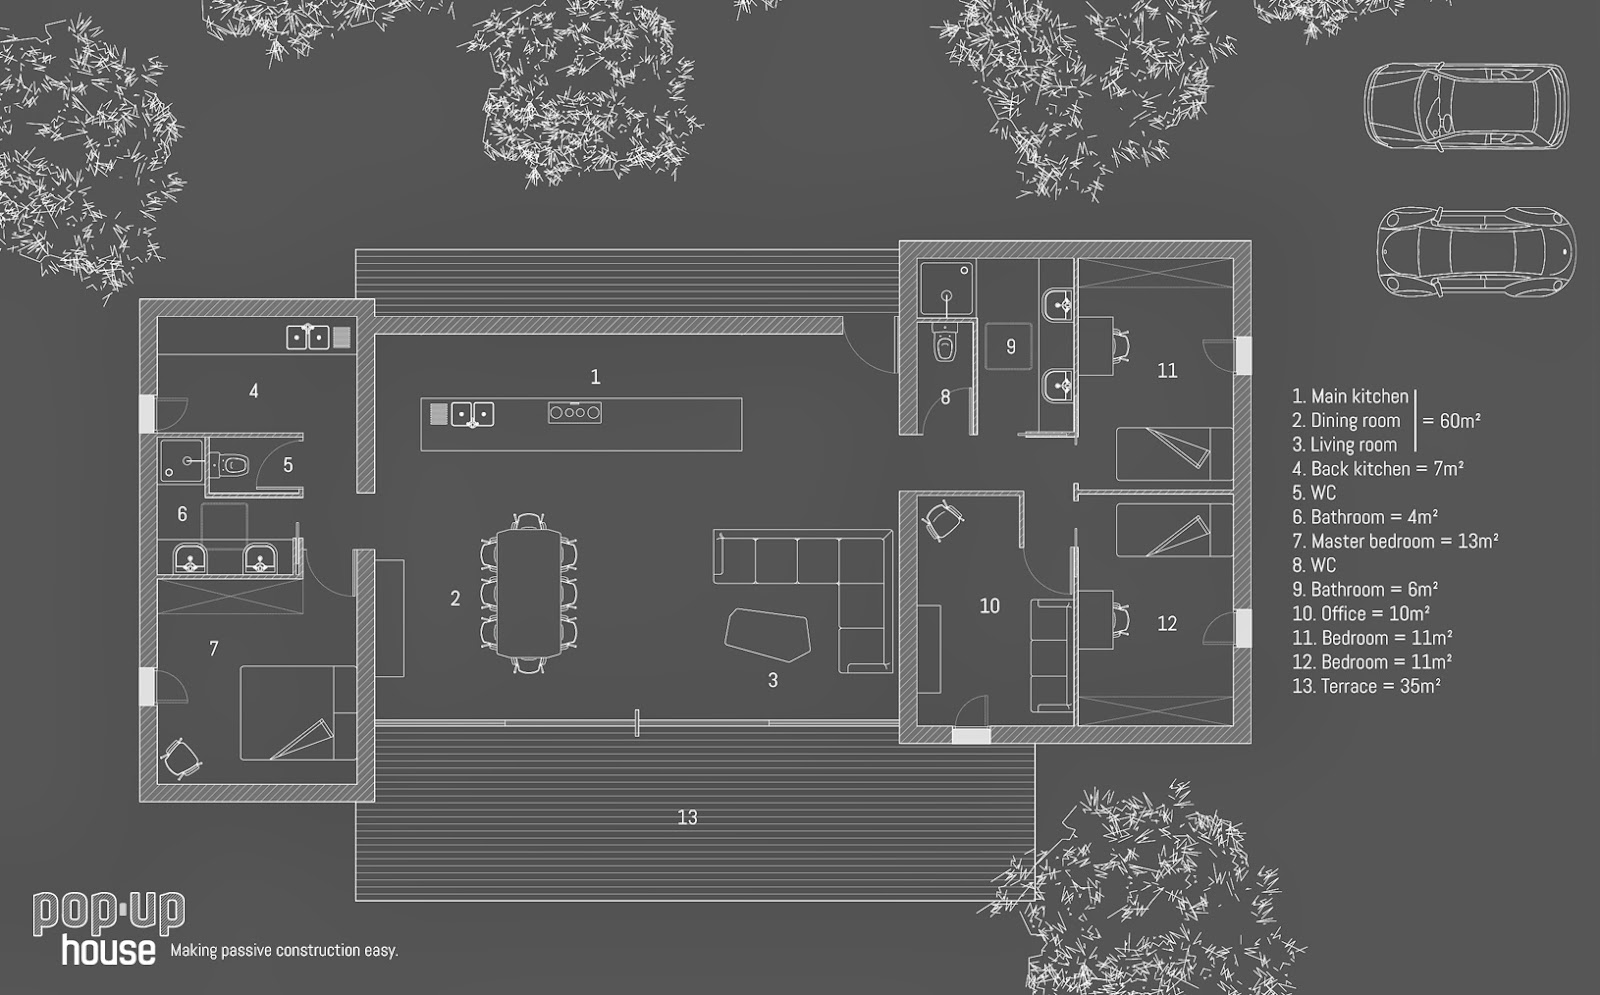 04-Floor-Plan-PopUp-House-Passive-House-Multipod-Studio-Design-and-Architecture-www-designstack-co